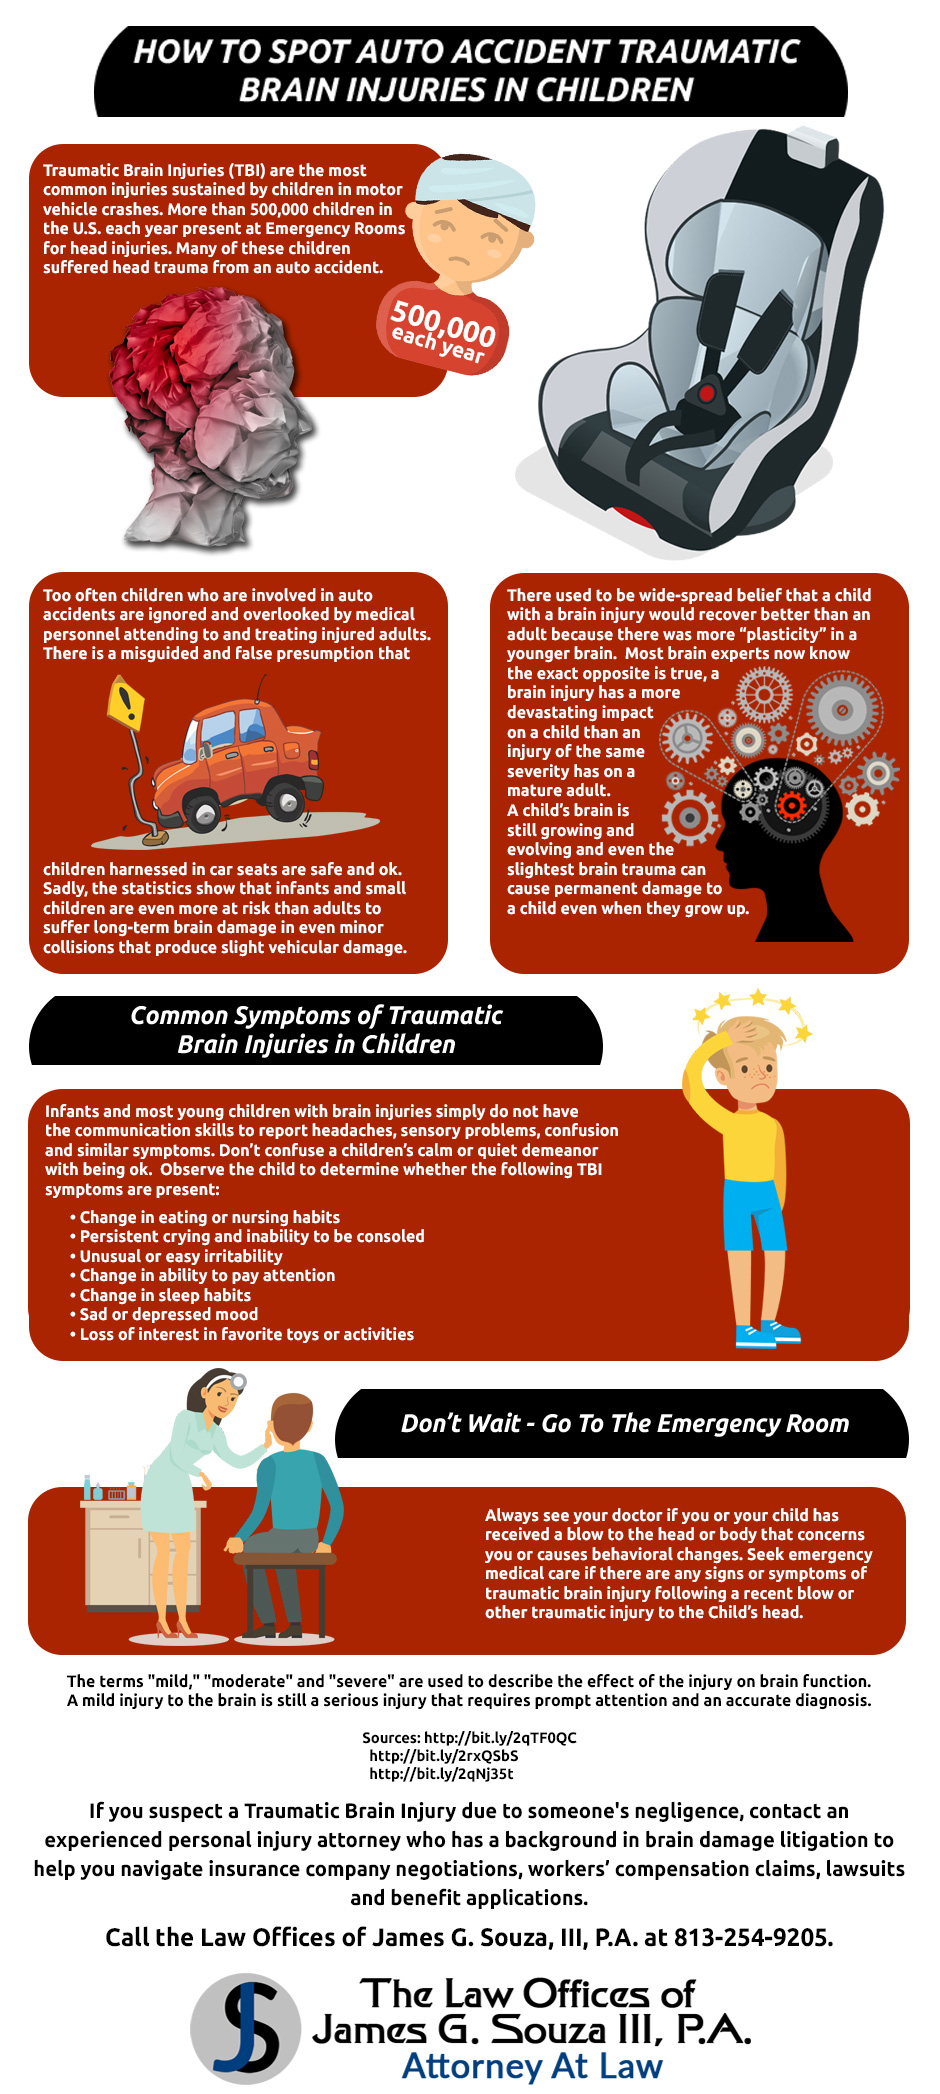 How to Spot Auto Accident Traumatic Brain Injuries in Children